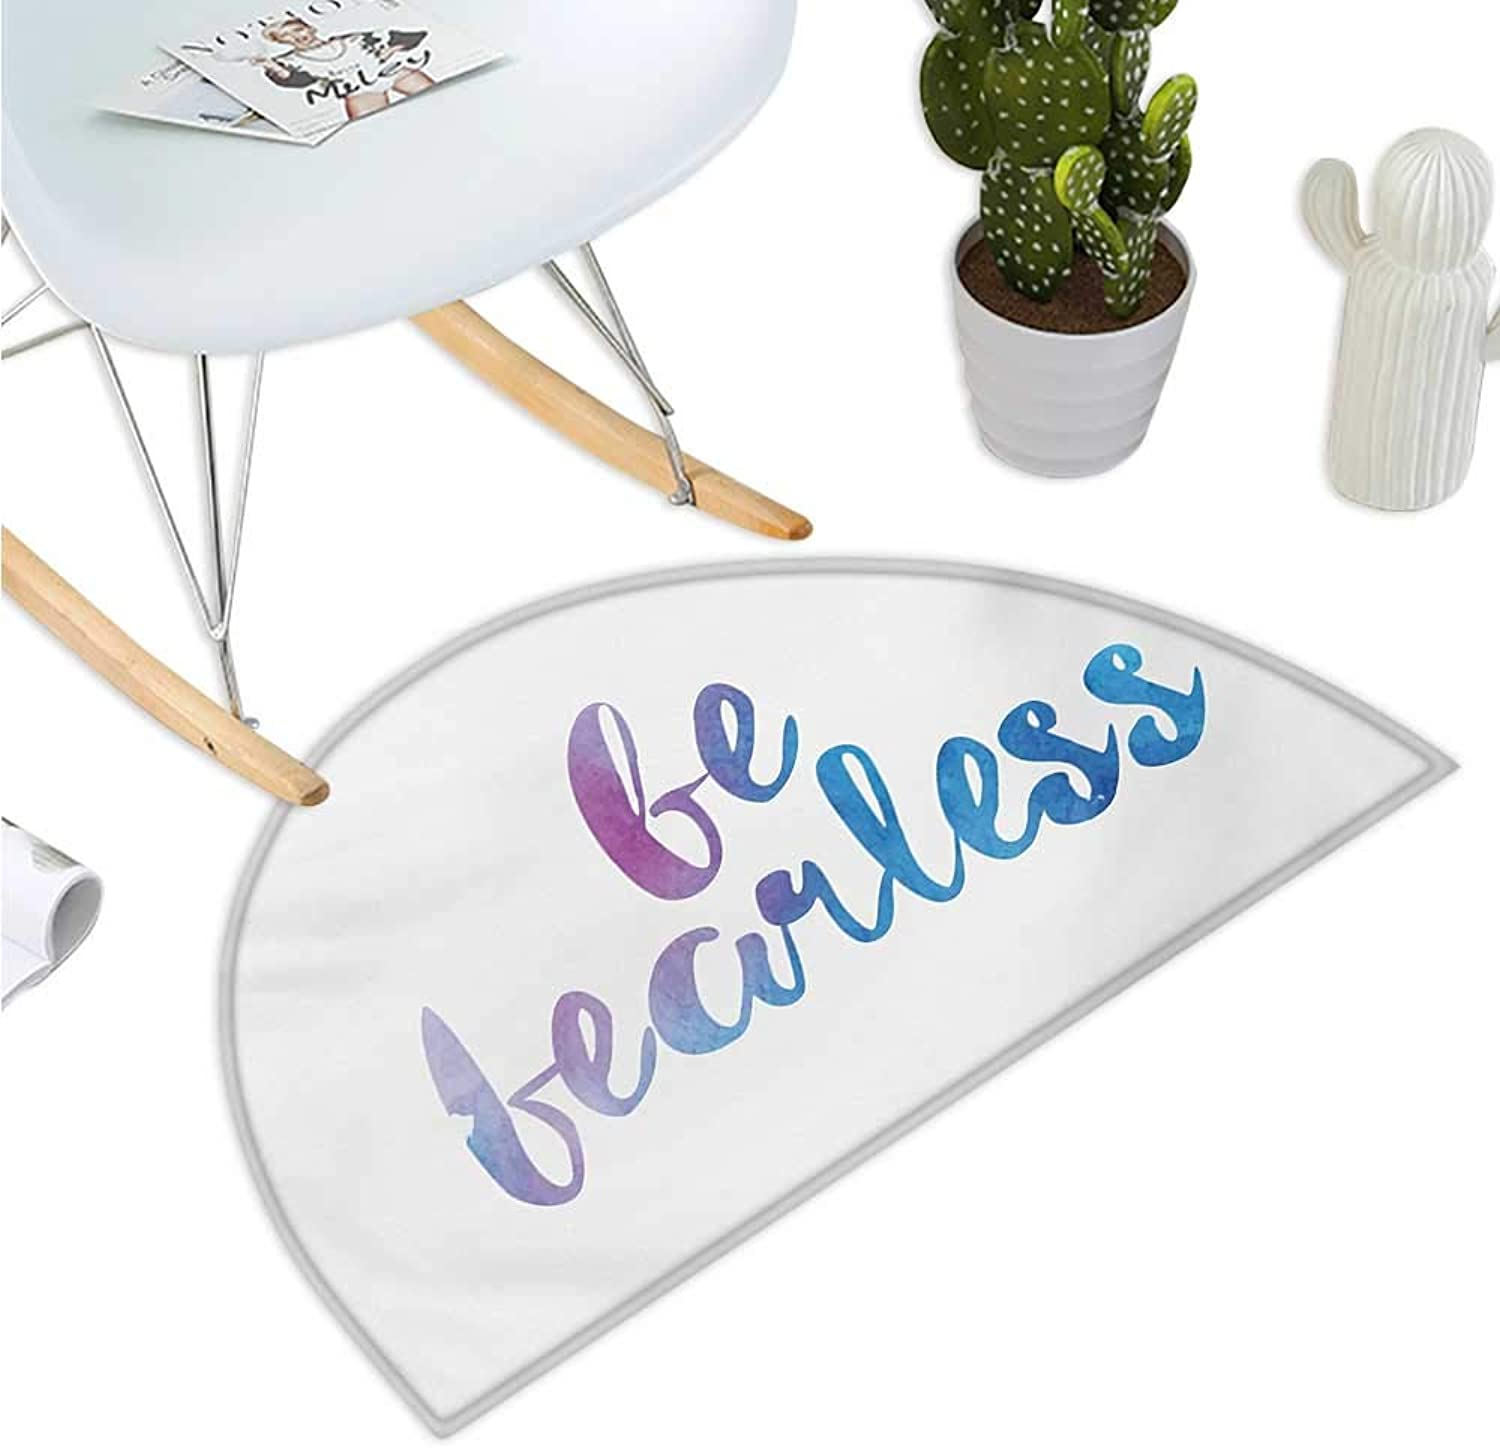 Quote Semicircular Cushion Be Fearless Text Expression in Watercolor Style with Smooth color Changes Entry Door Mat H 43.3  xD 64.9  purplec White and bluee